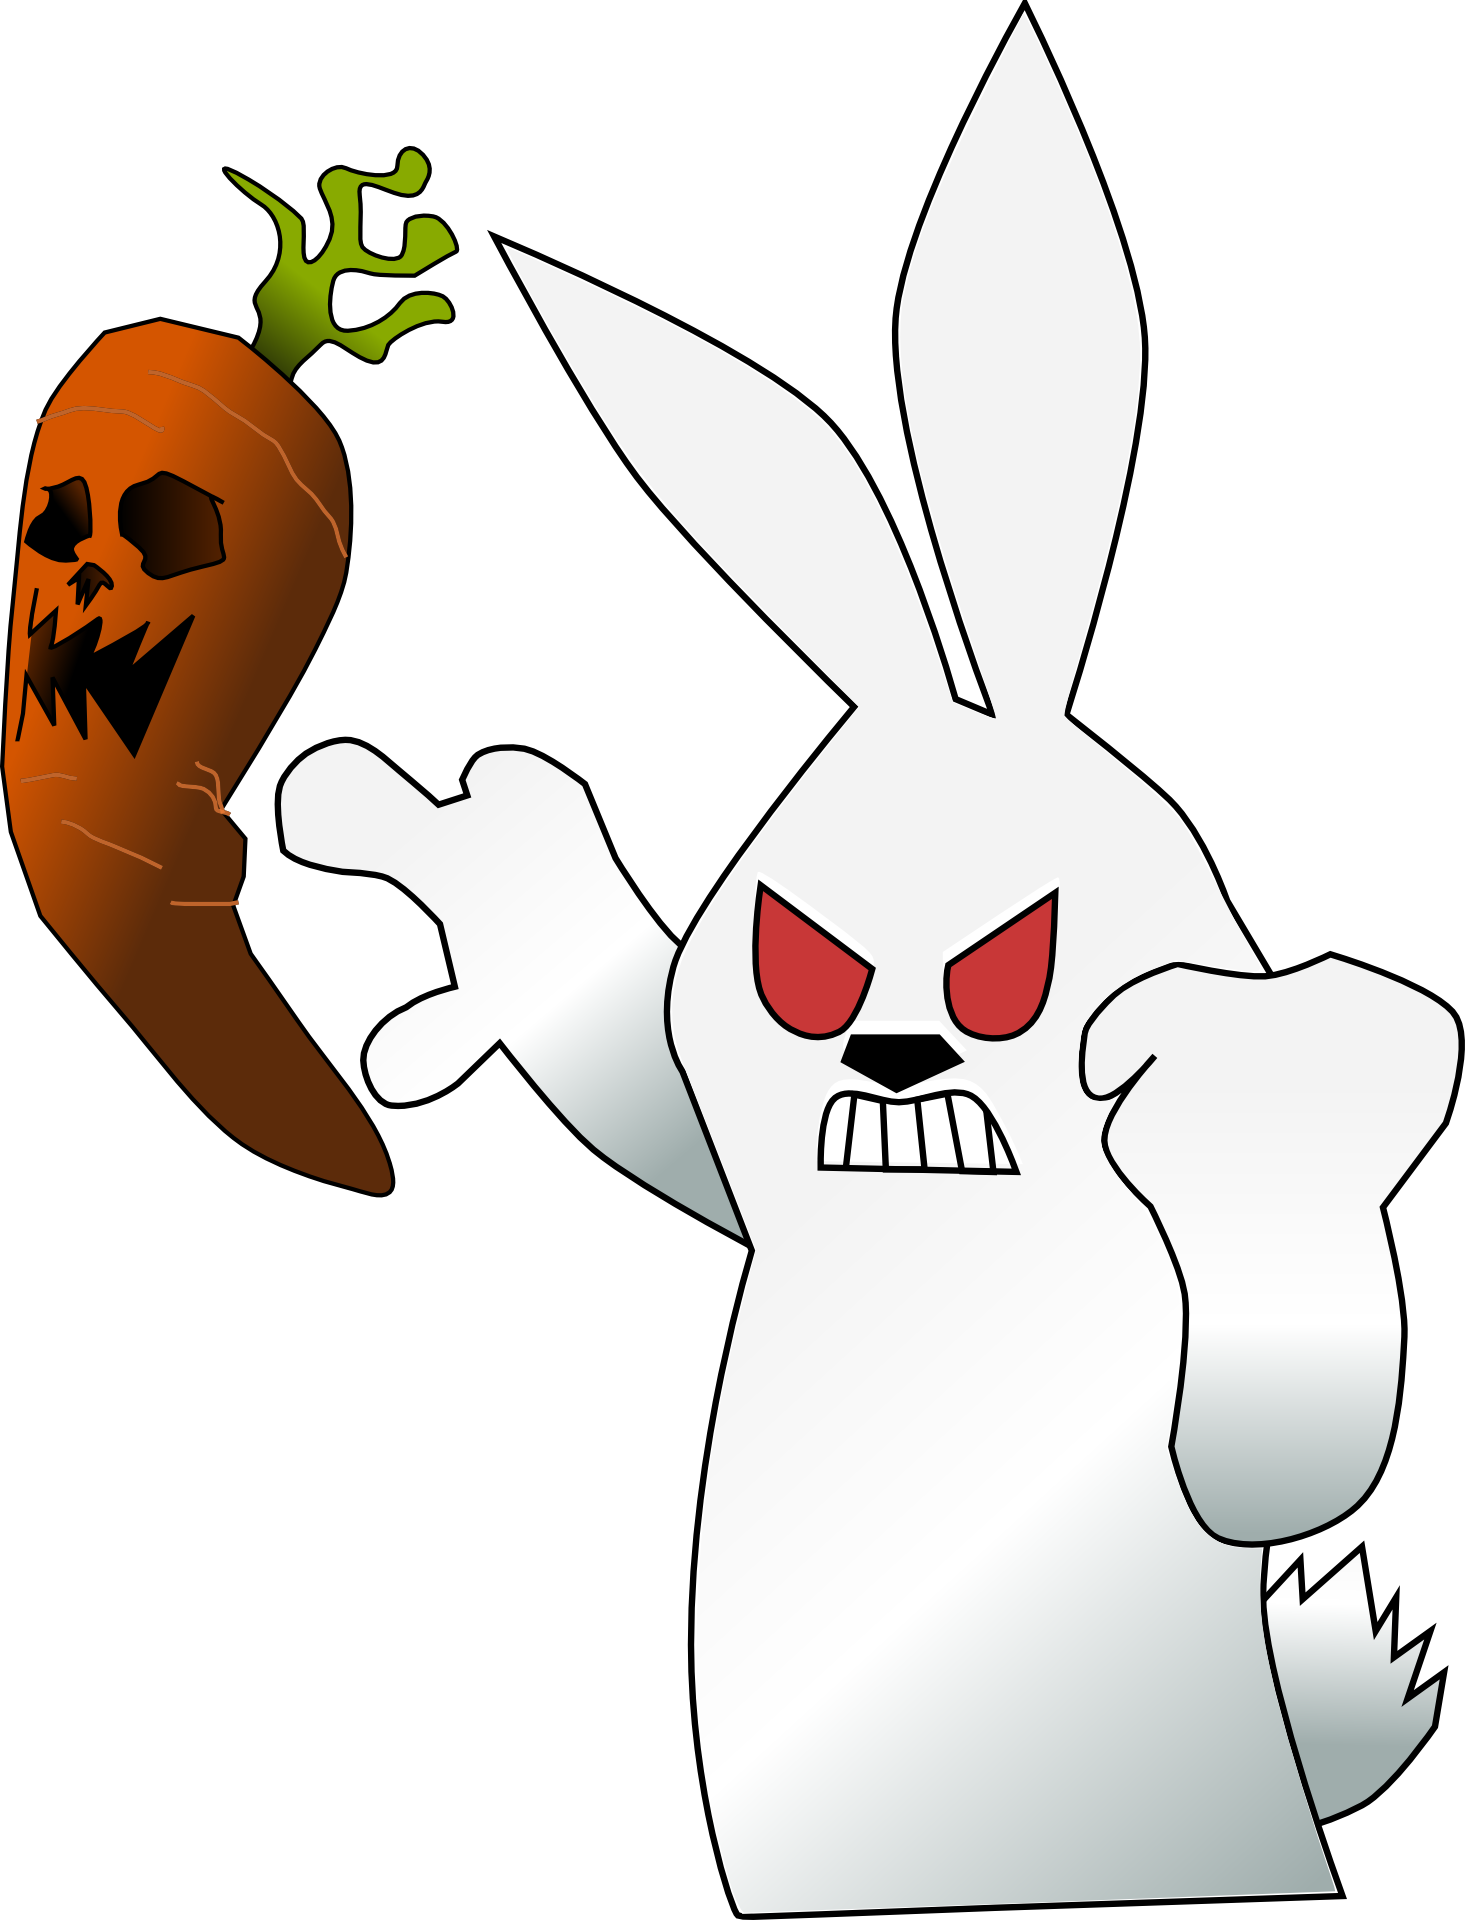 Clipart rabbit carrot. Bunny angry mad free